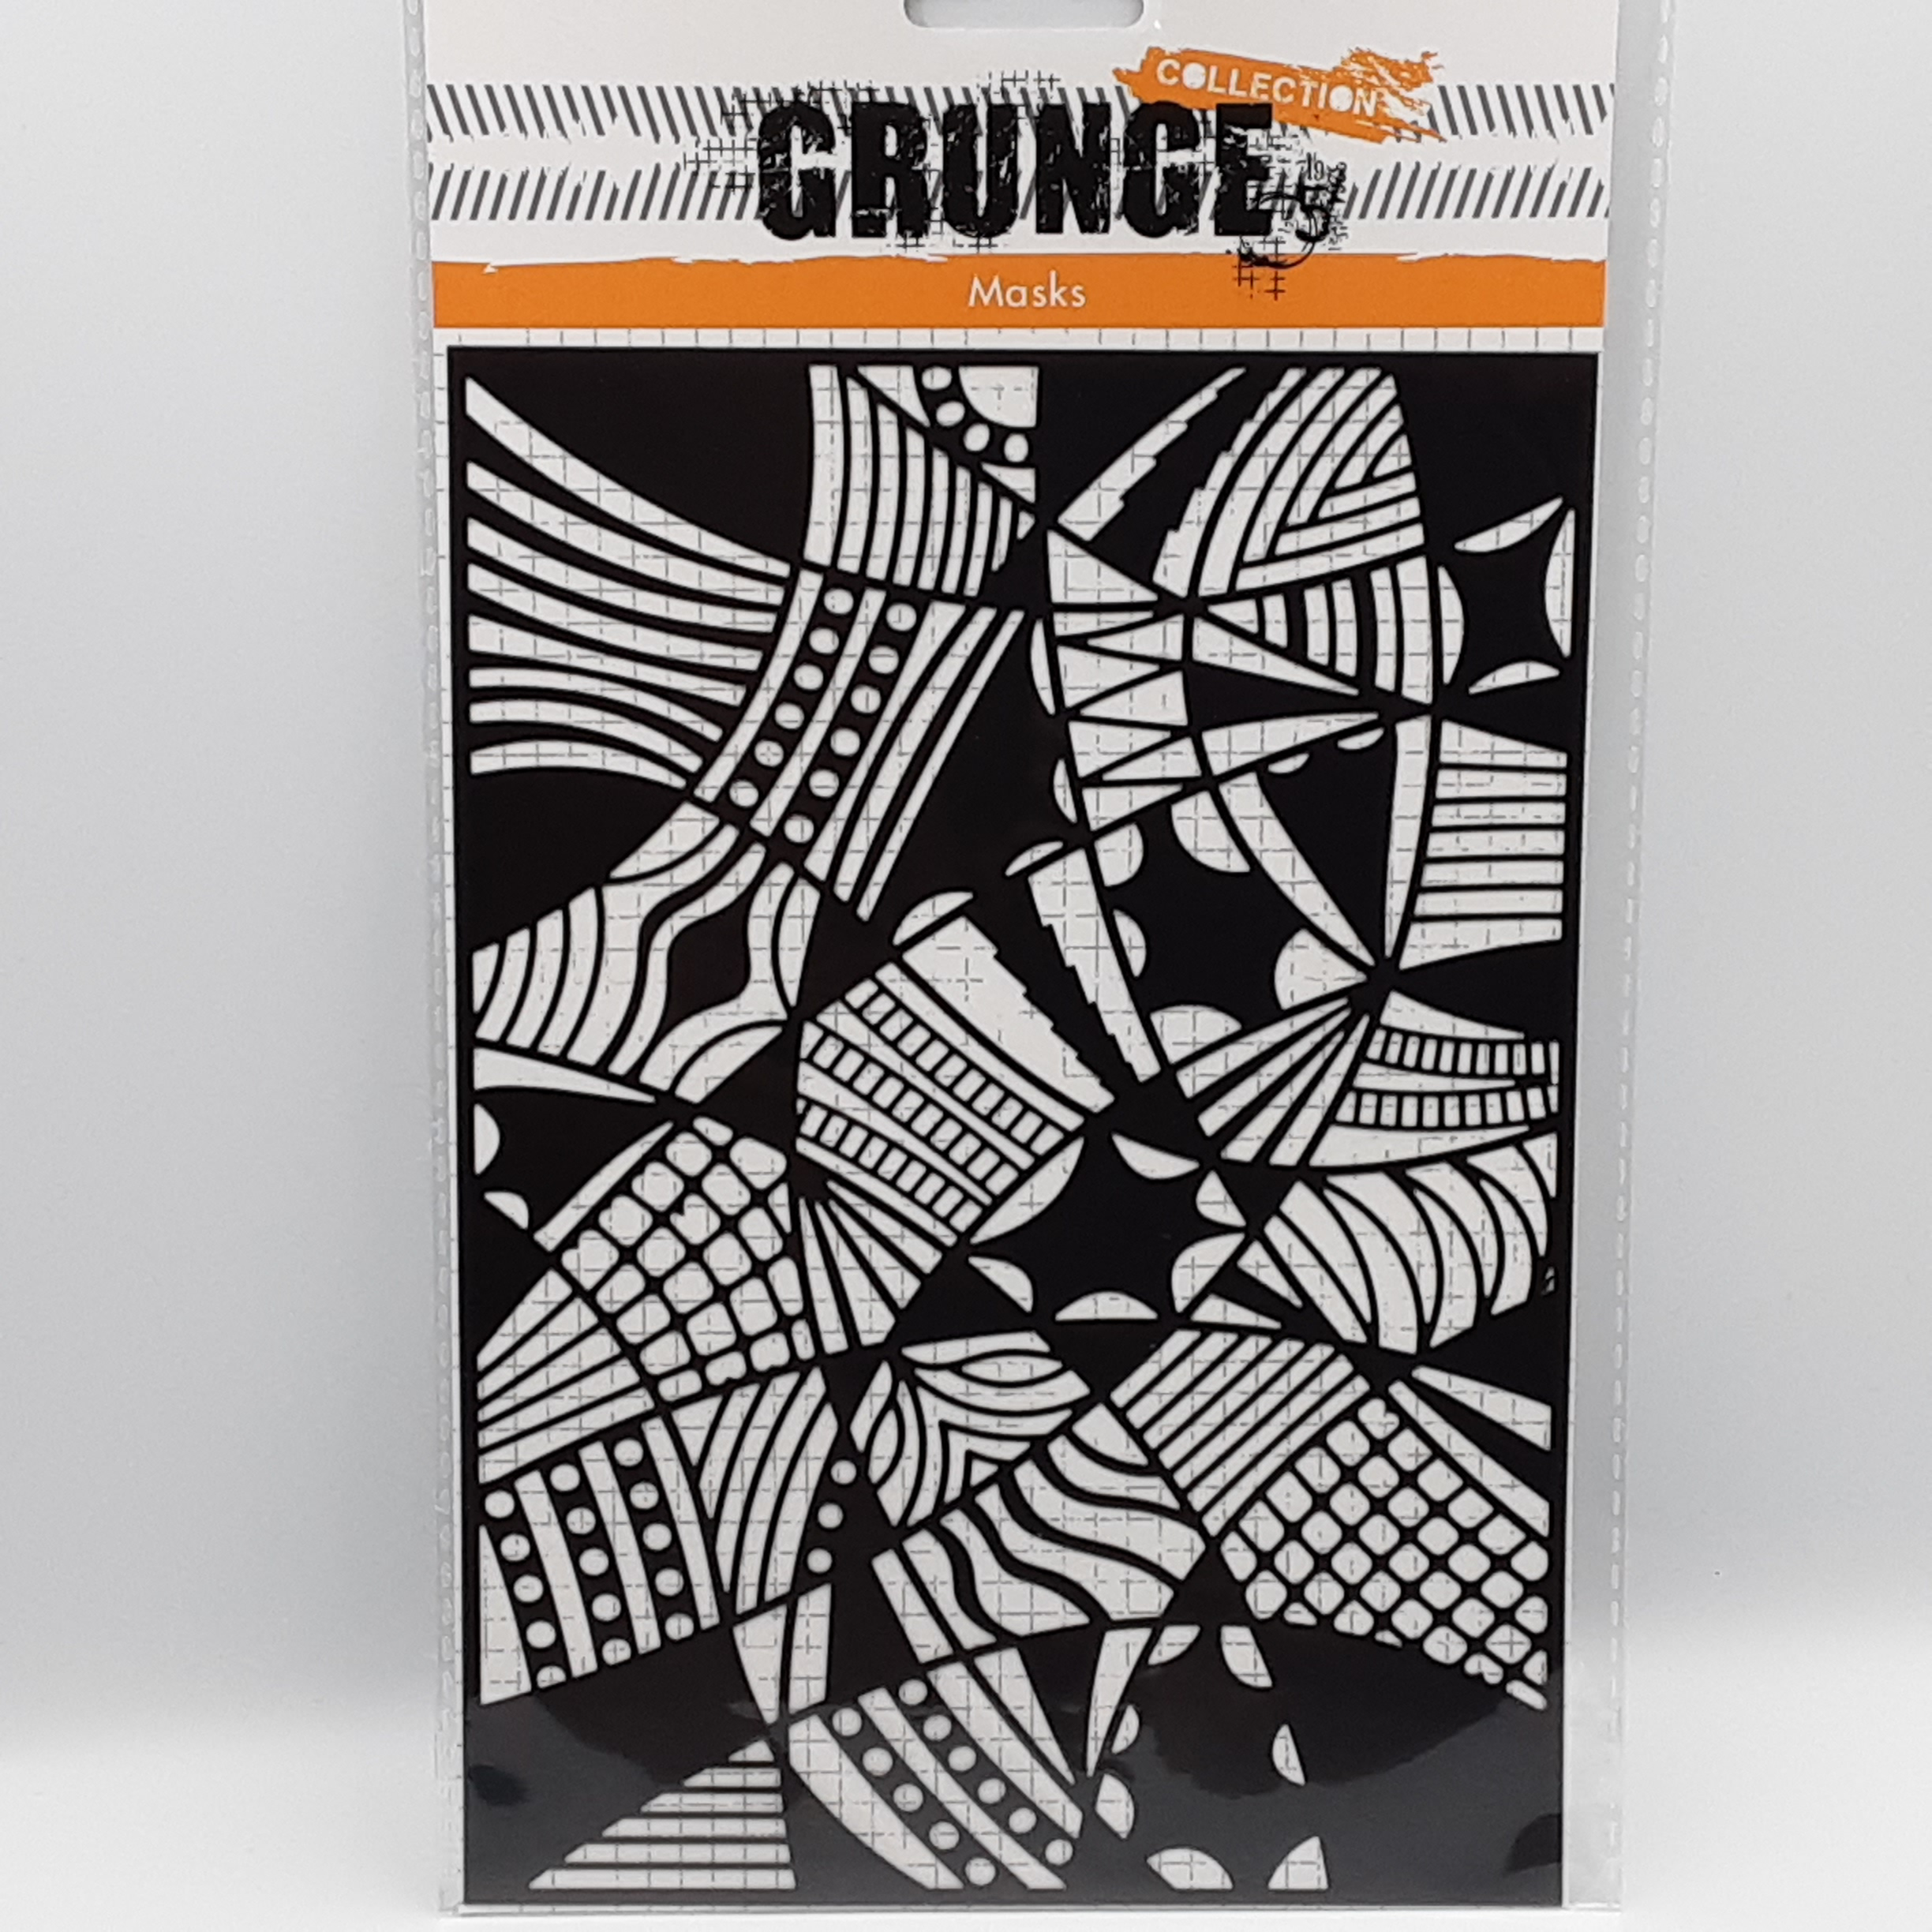 Grunge collection mask nr 54